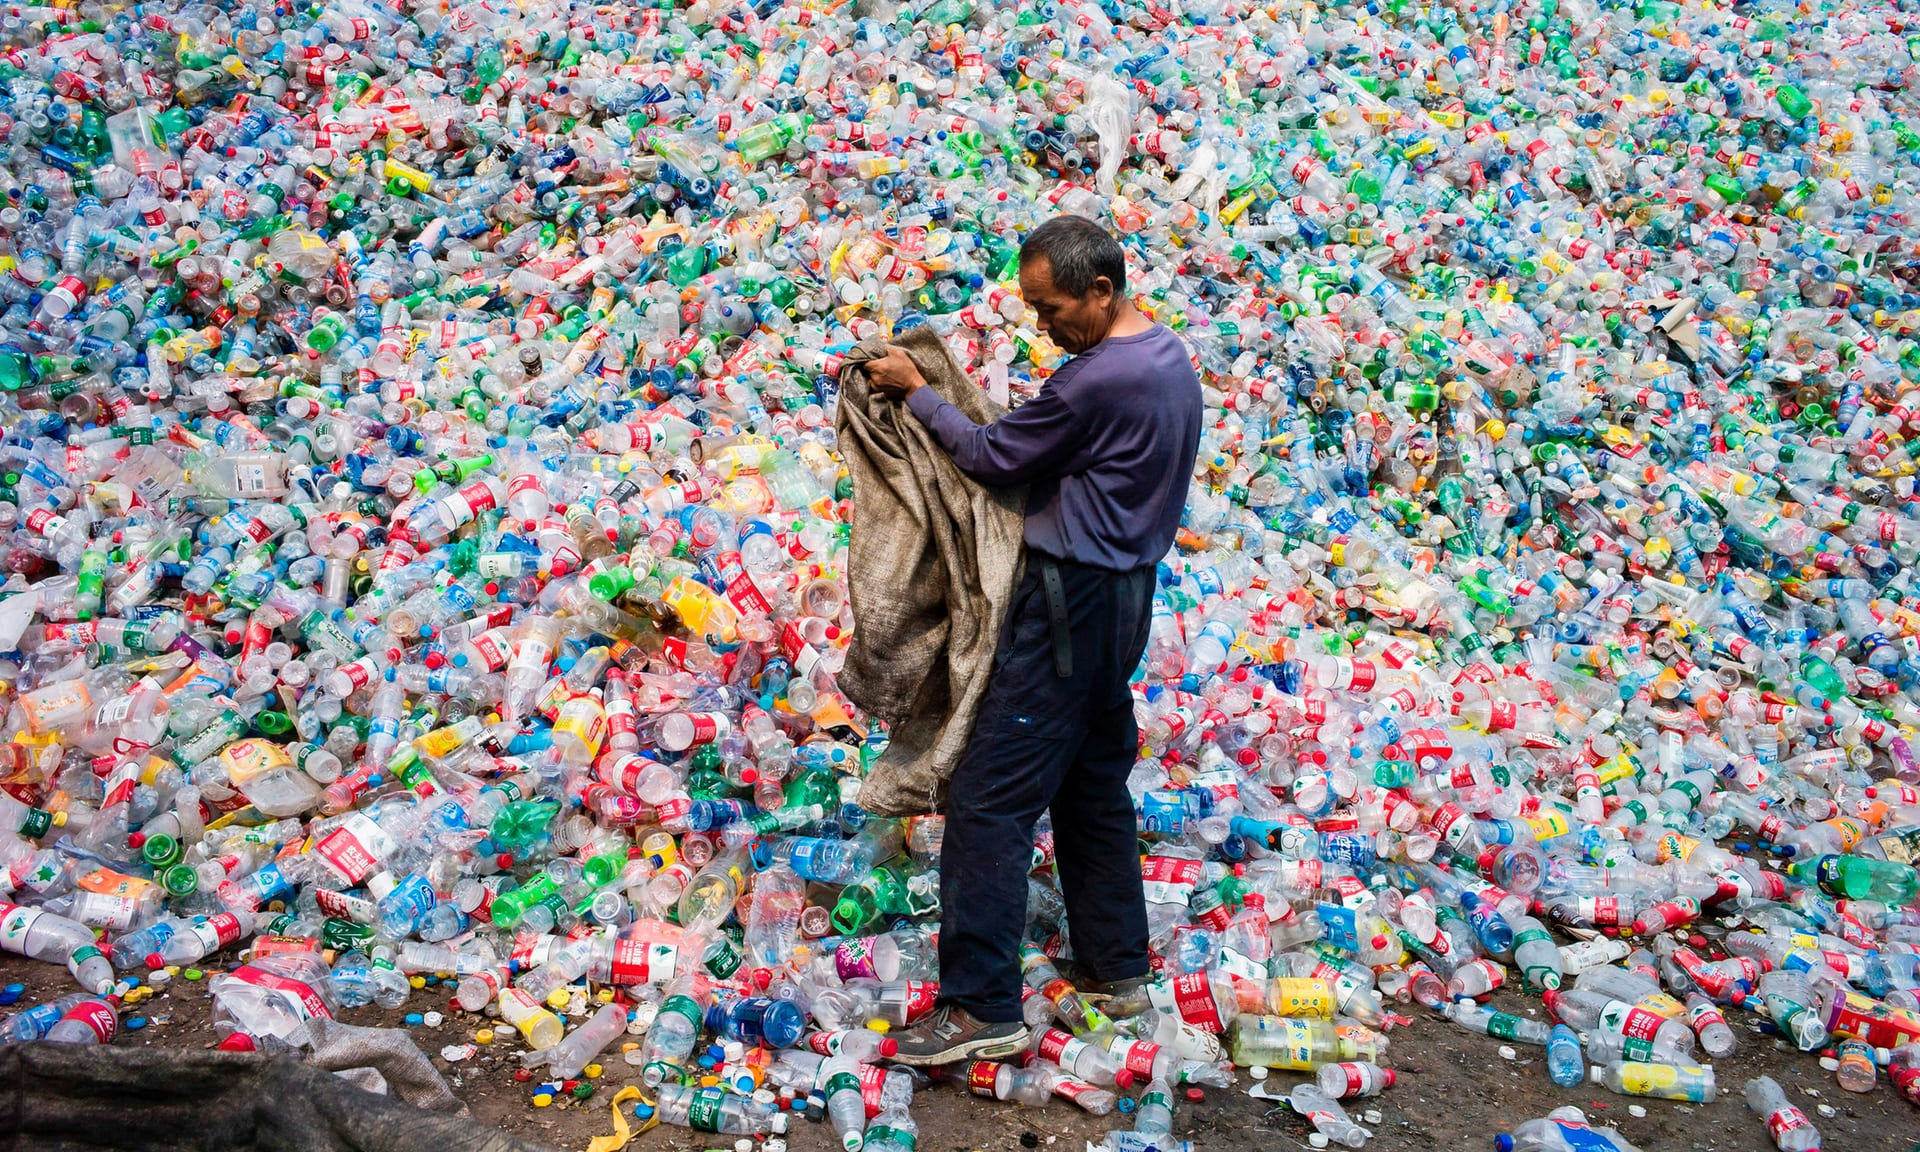 Scientists accidentally create mutant enzyme that eats plastic bottles